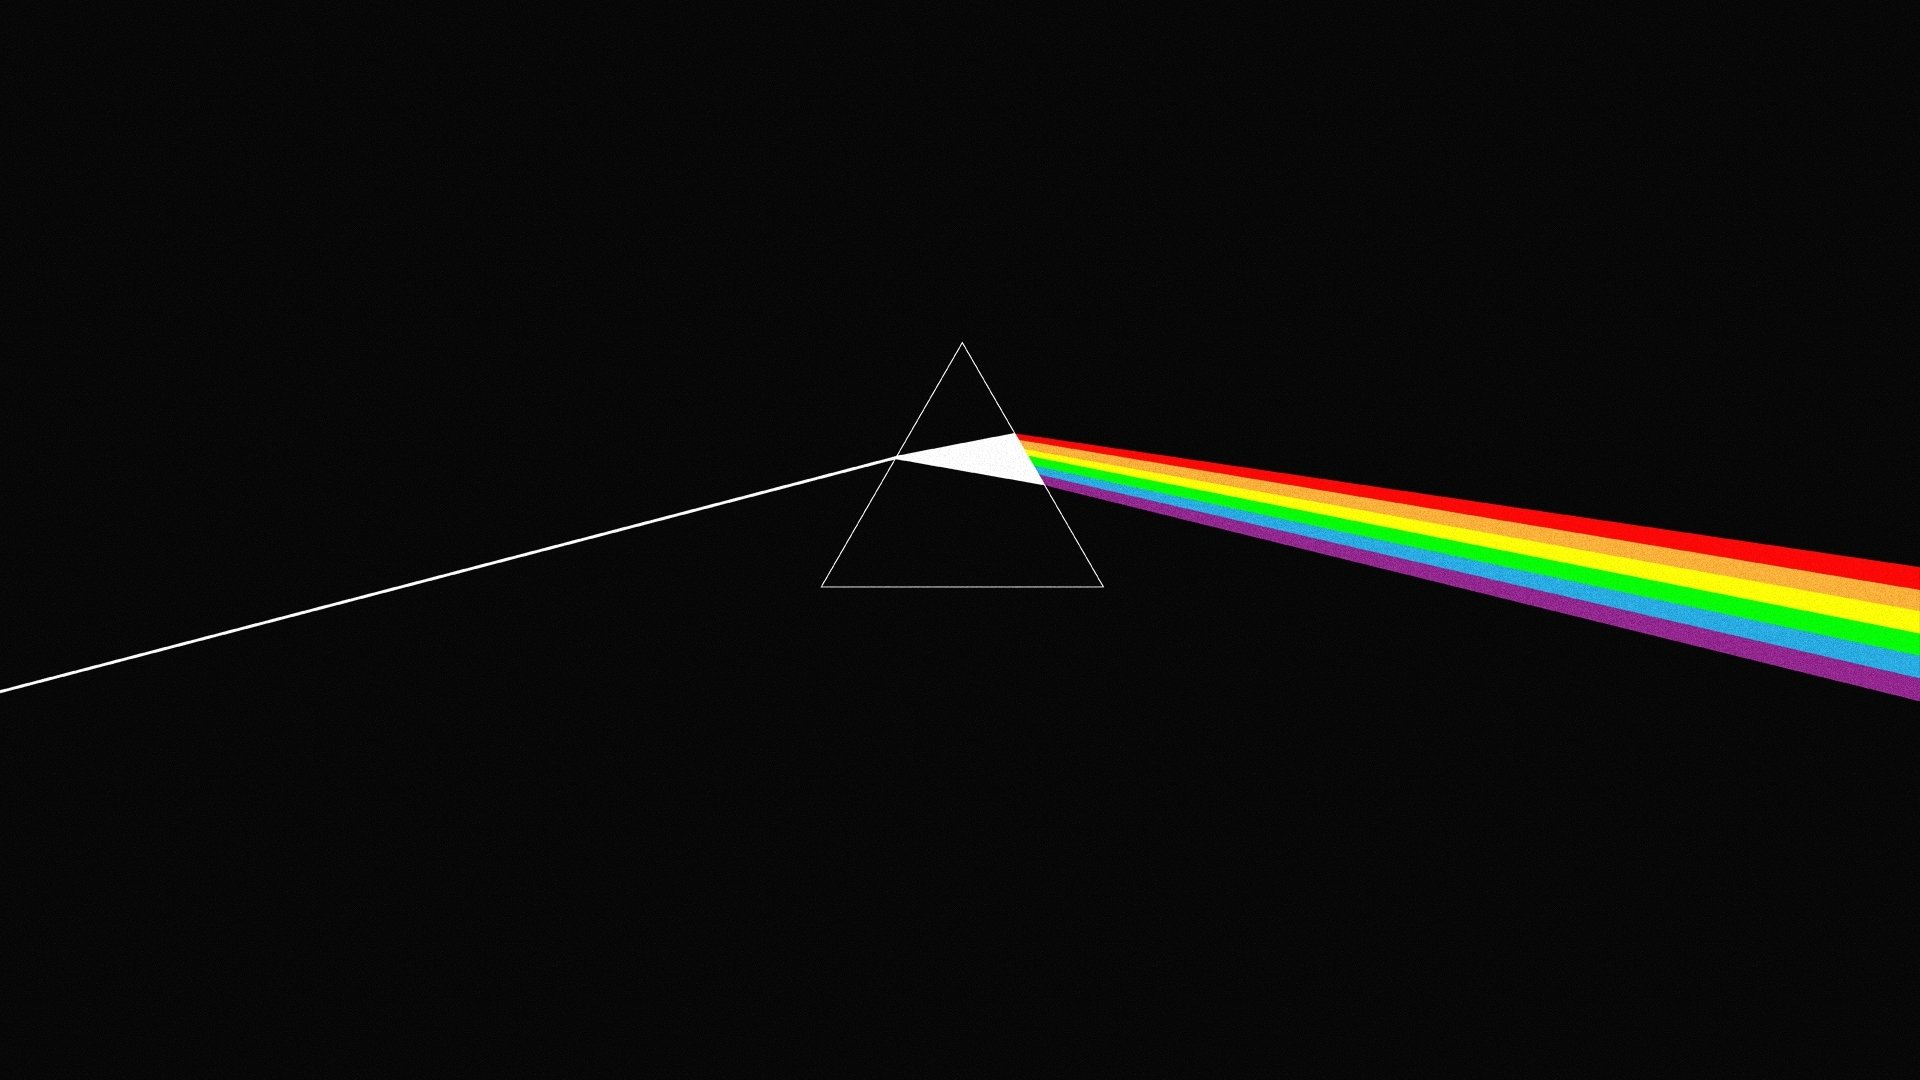 pink floyd 1920x1080 wallpaper Entertainment HD WallpaperHi Res 1920x1080